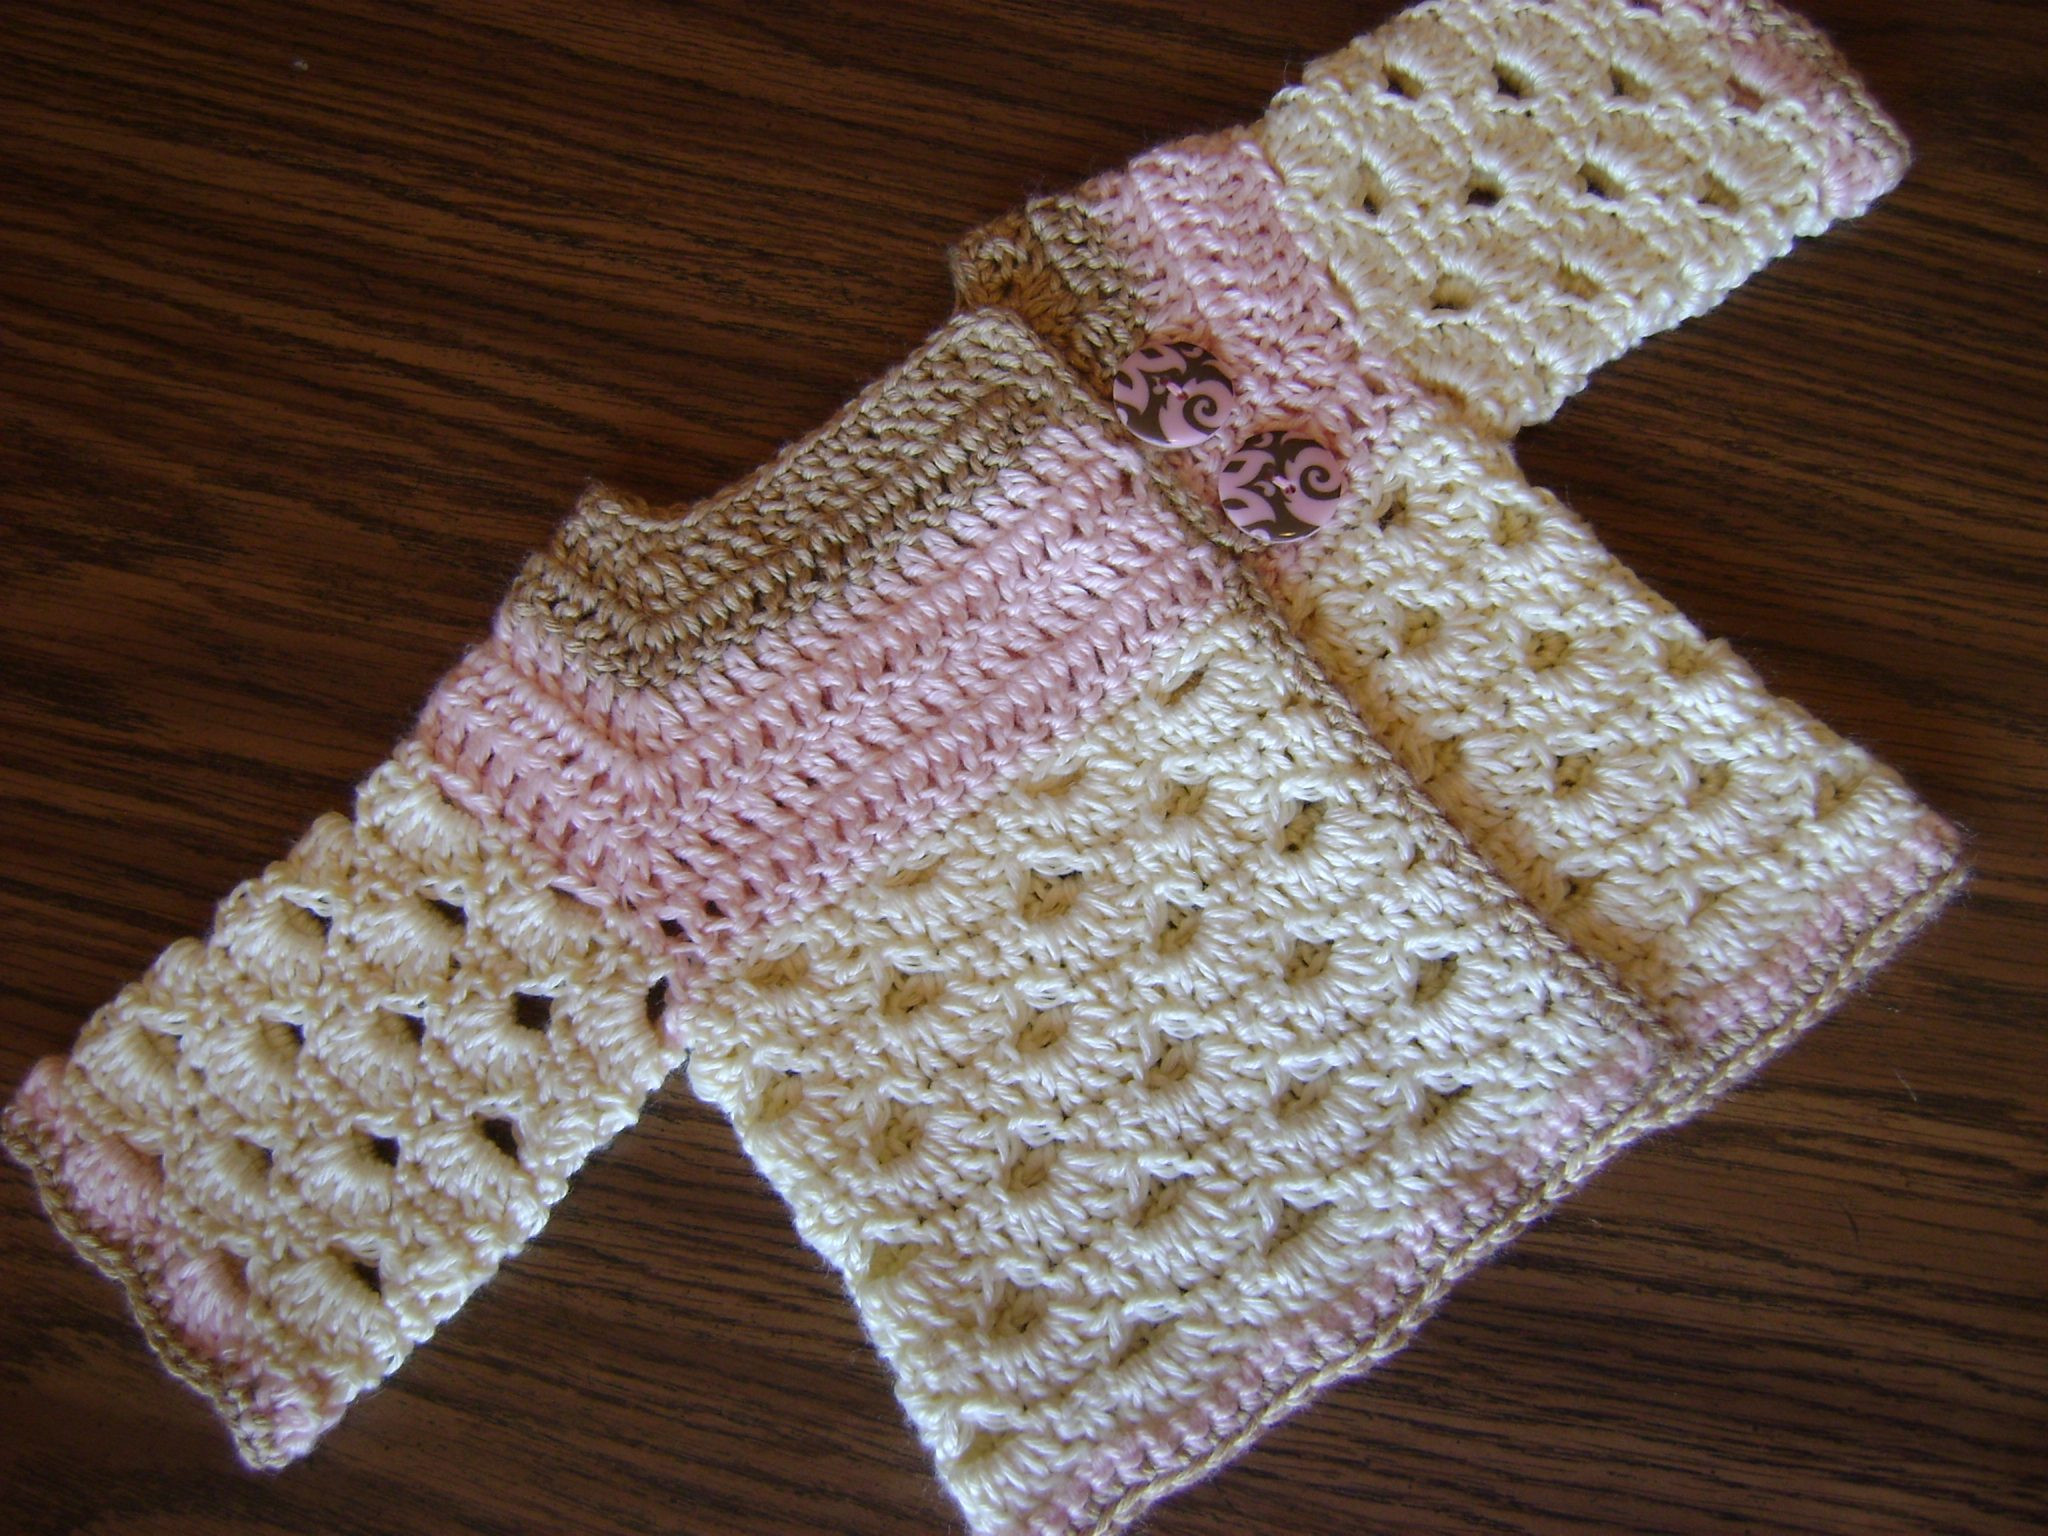 Best Of Easy Crocheted Baby Sweater Patterns Online Crochet and Easy Crochet Sweater Pattern Of Great 49 Pics Easy Crochet Sweater Pattern